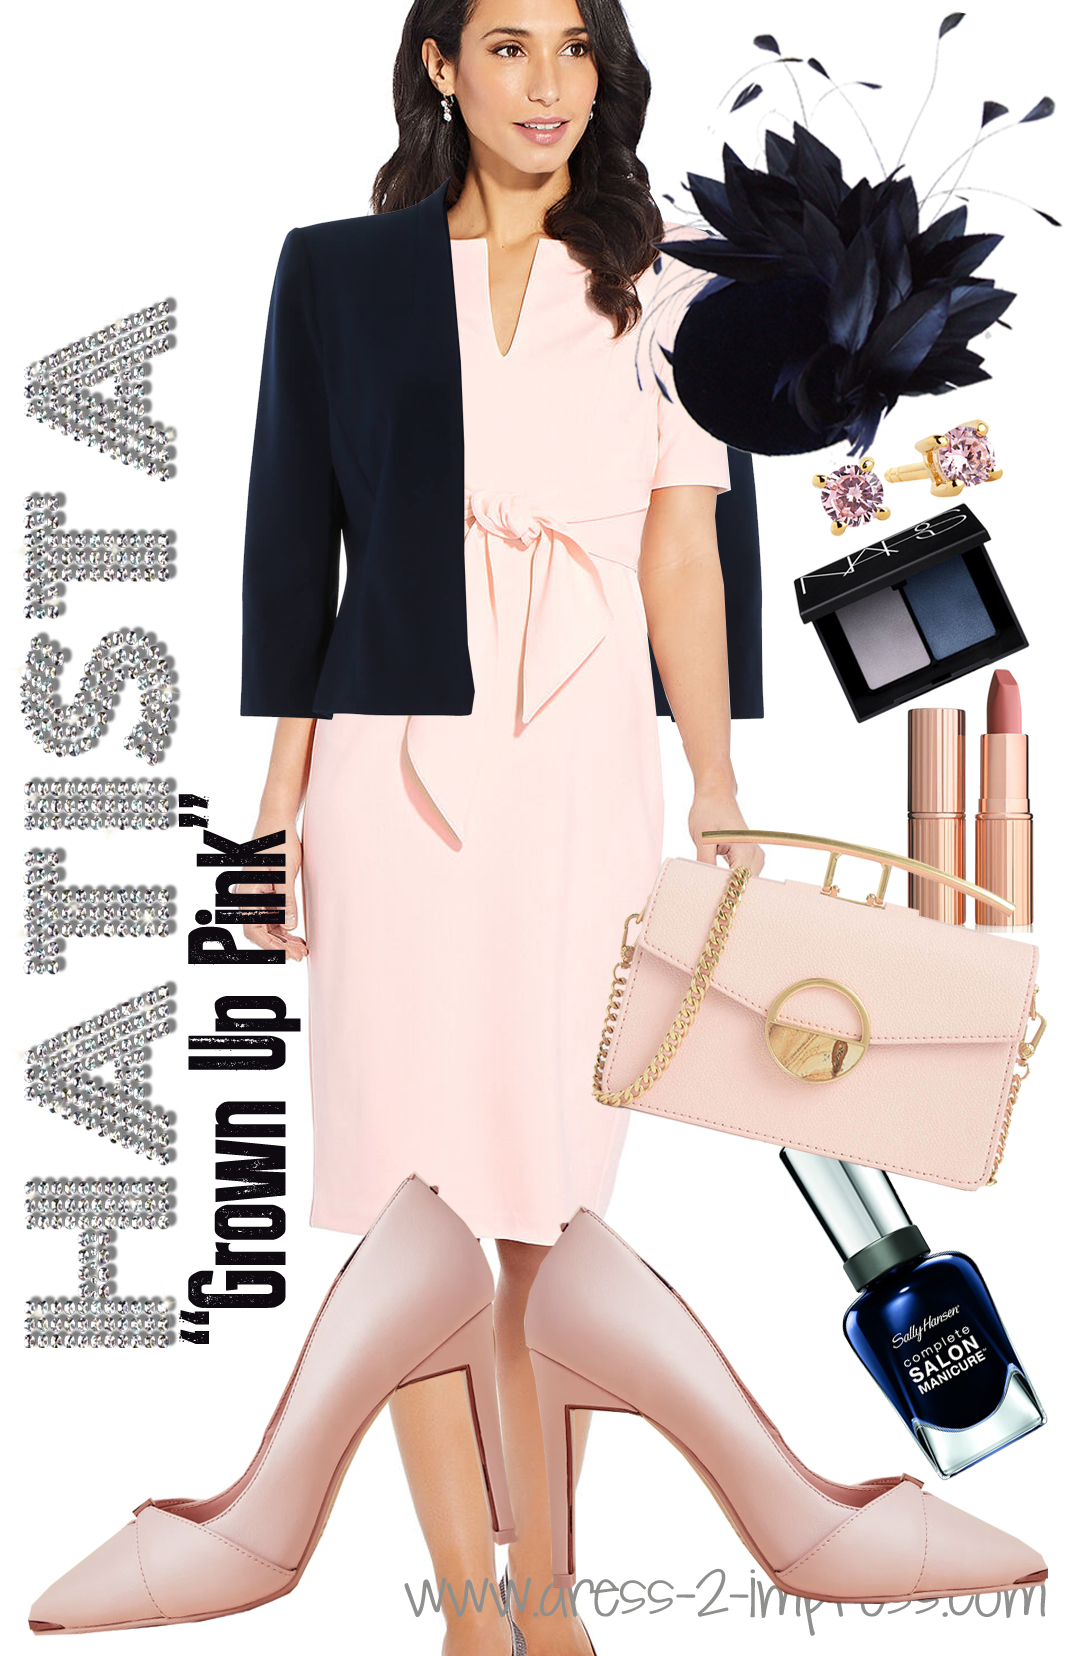 How to Wear Pink for Racing Fashions. Pink Outfits for the Races. What to wear to the Races. What to wear for the Kentucky Derby. from THE HATISTA www.dress-2-impress.com #racingfashion #wearyellow #outfitinspiration #outfitideas #pinkoutfits #motherofthebride